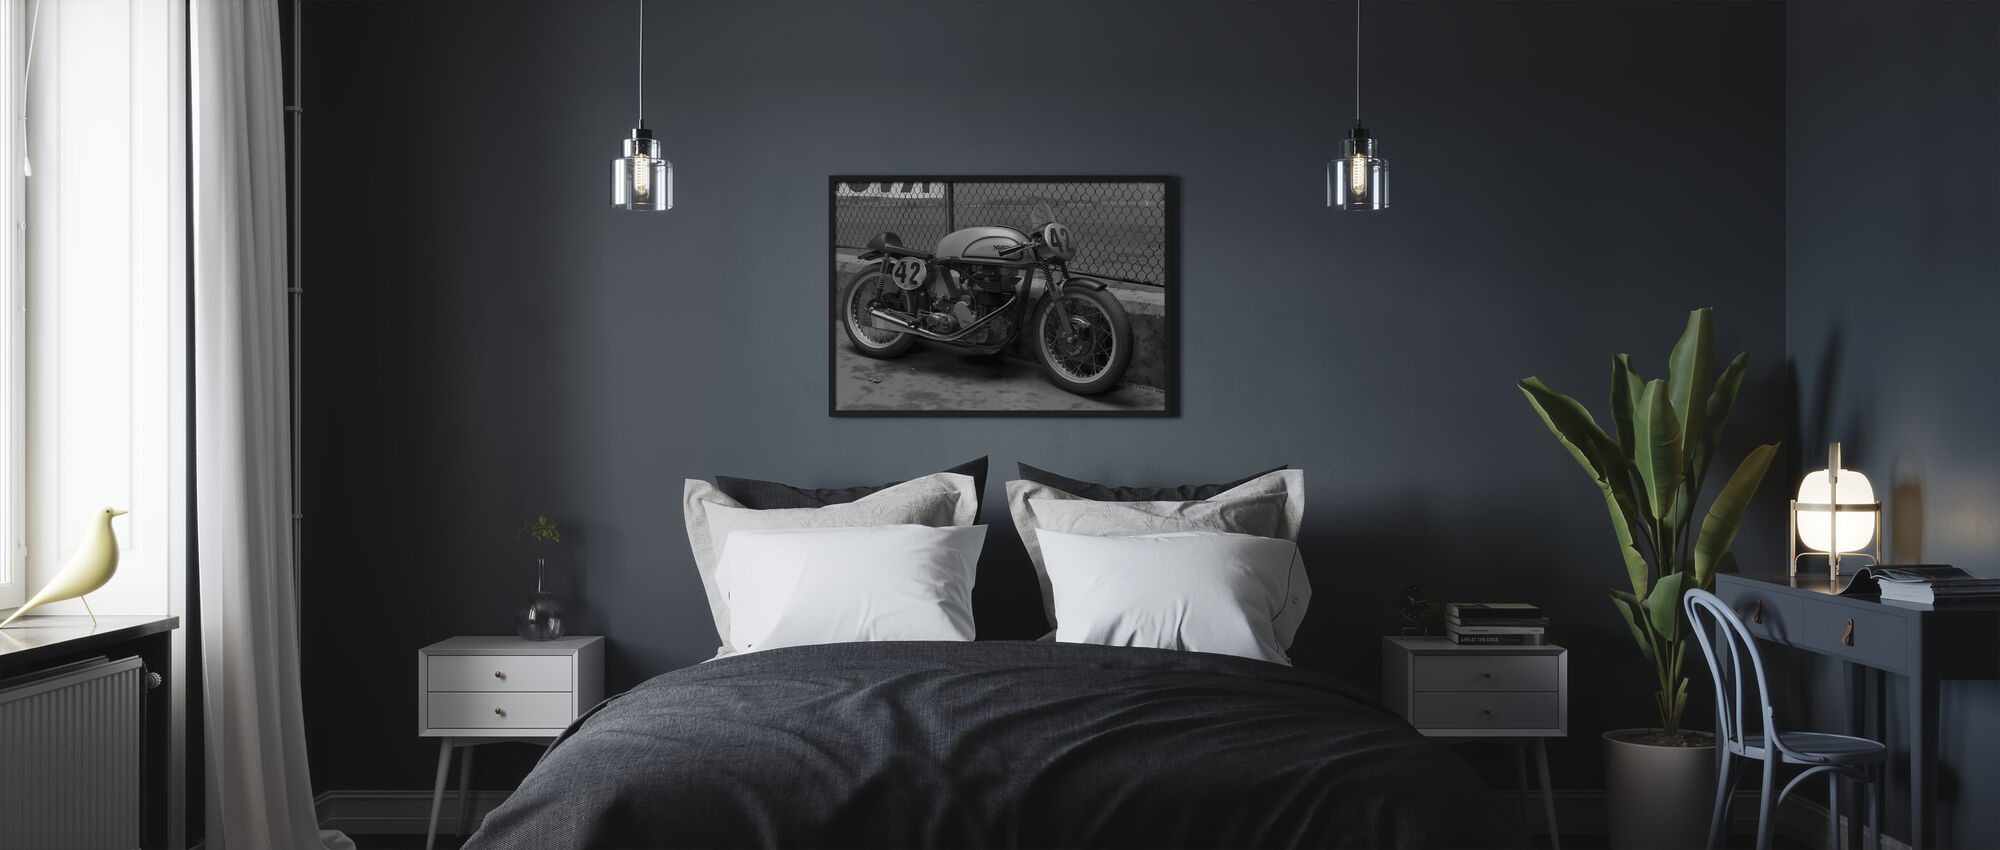 Motorcycle Final BW - Poster - Bedroom